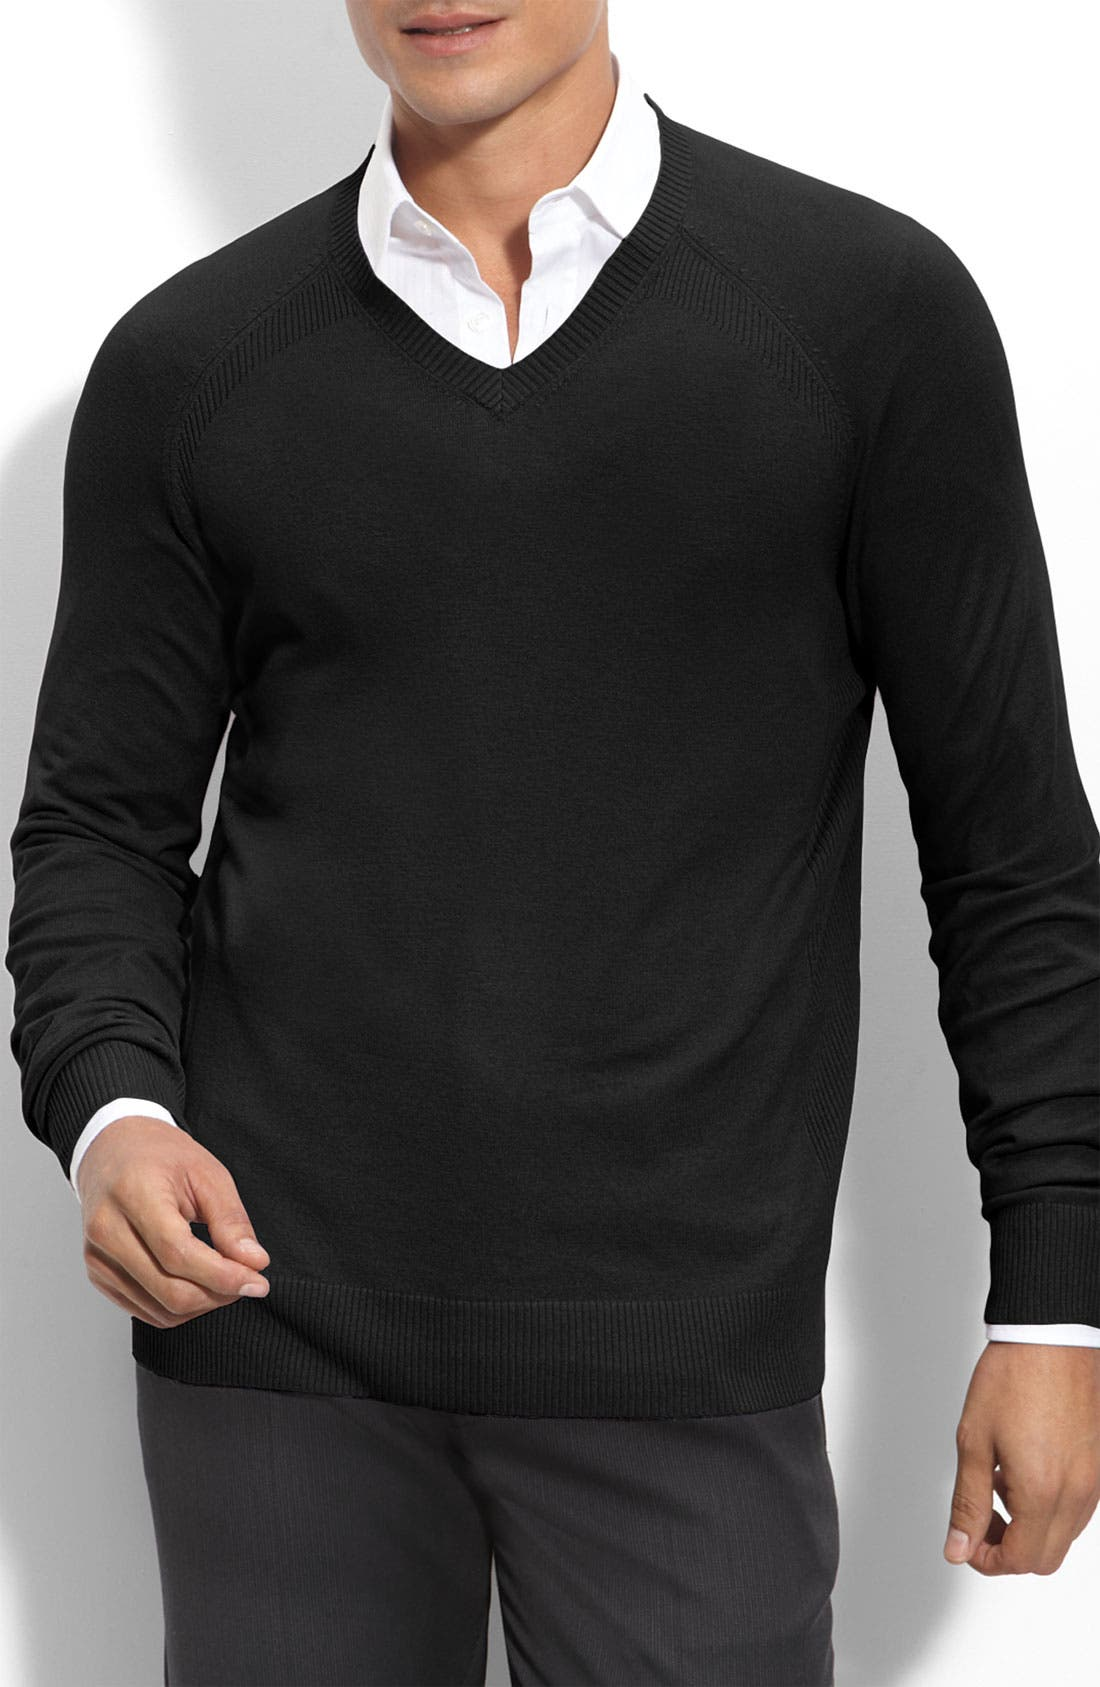 Main Image - Calibrate Trim Fit Cotton Blend V-Neck Sweater